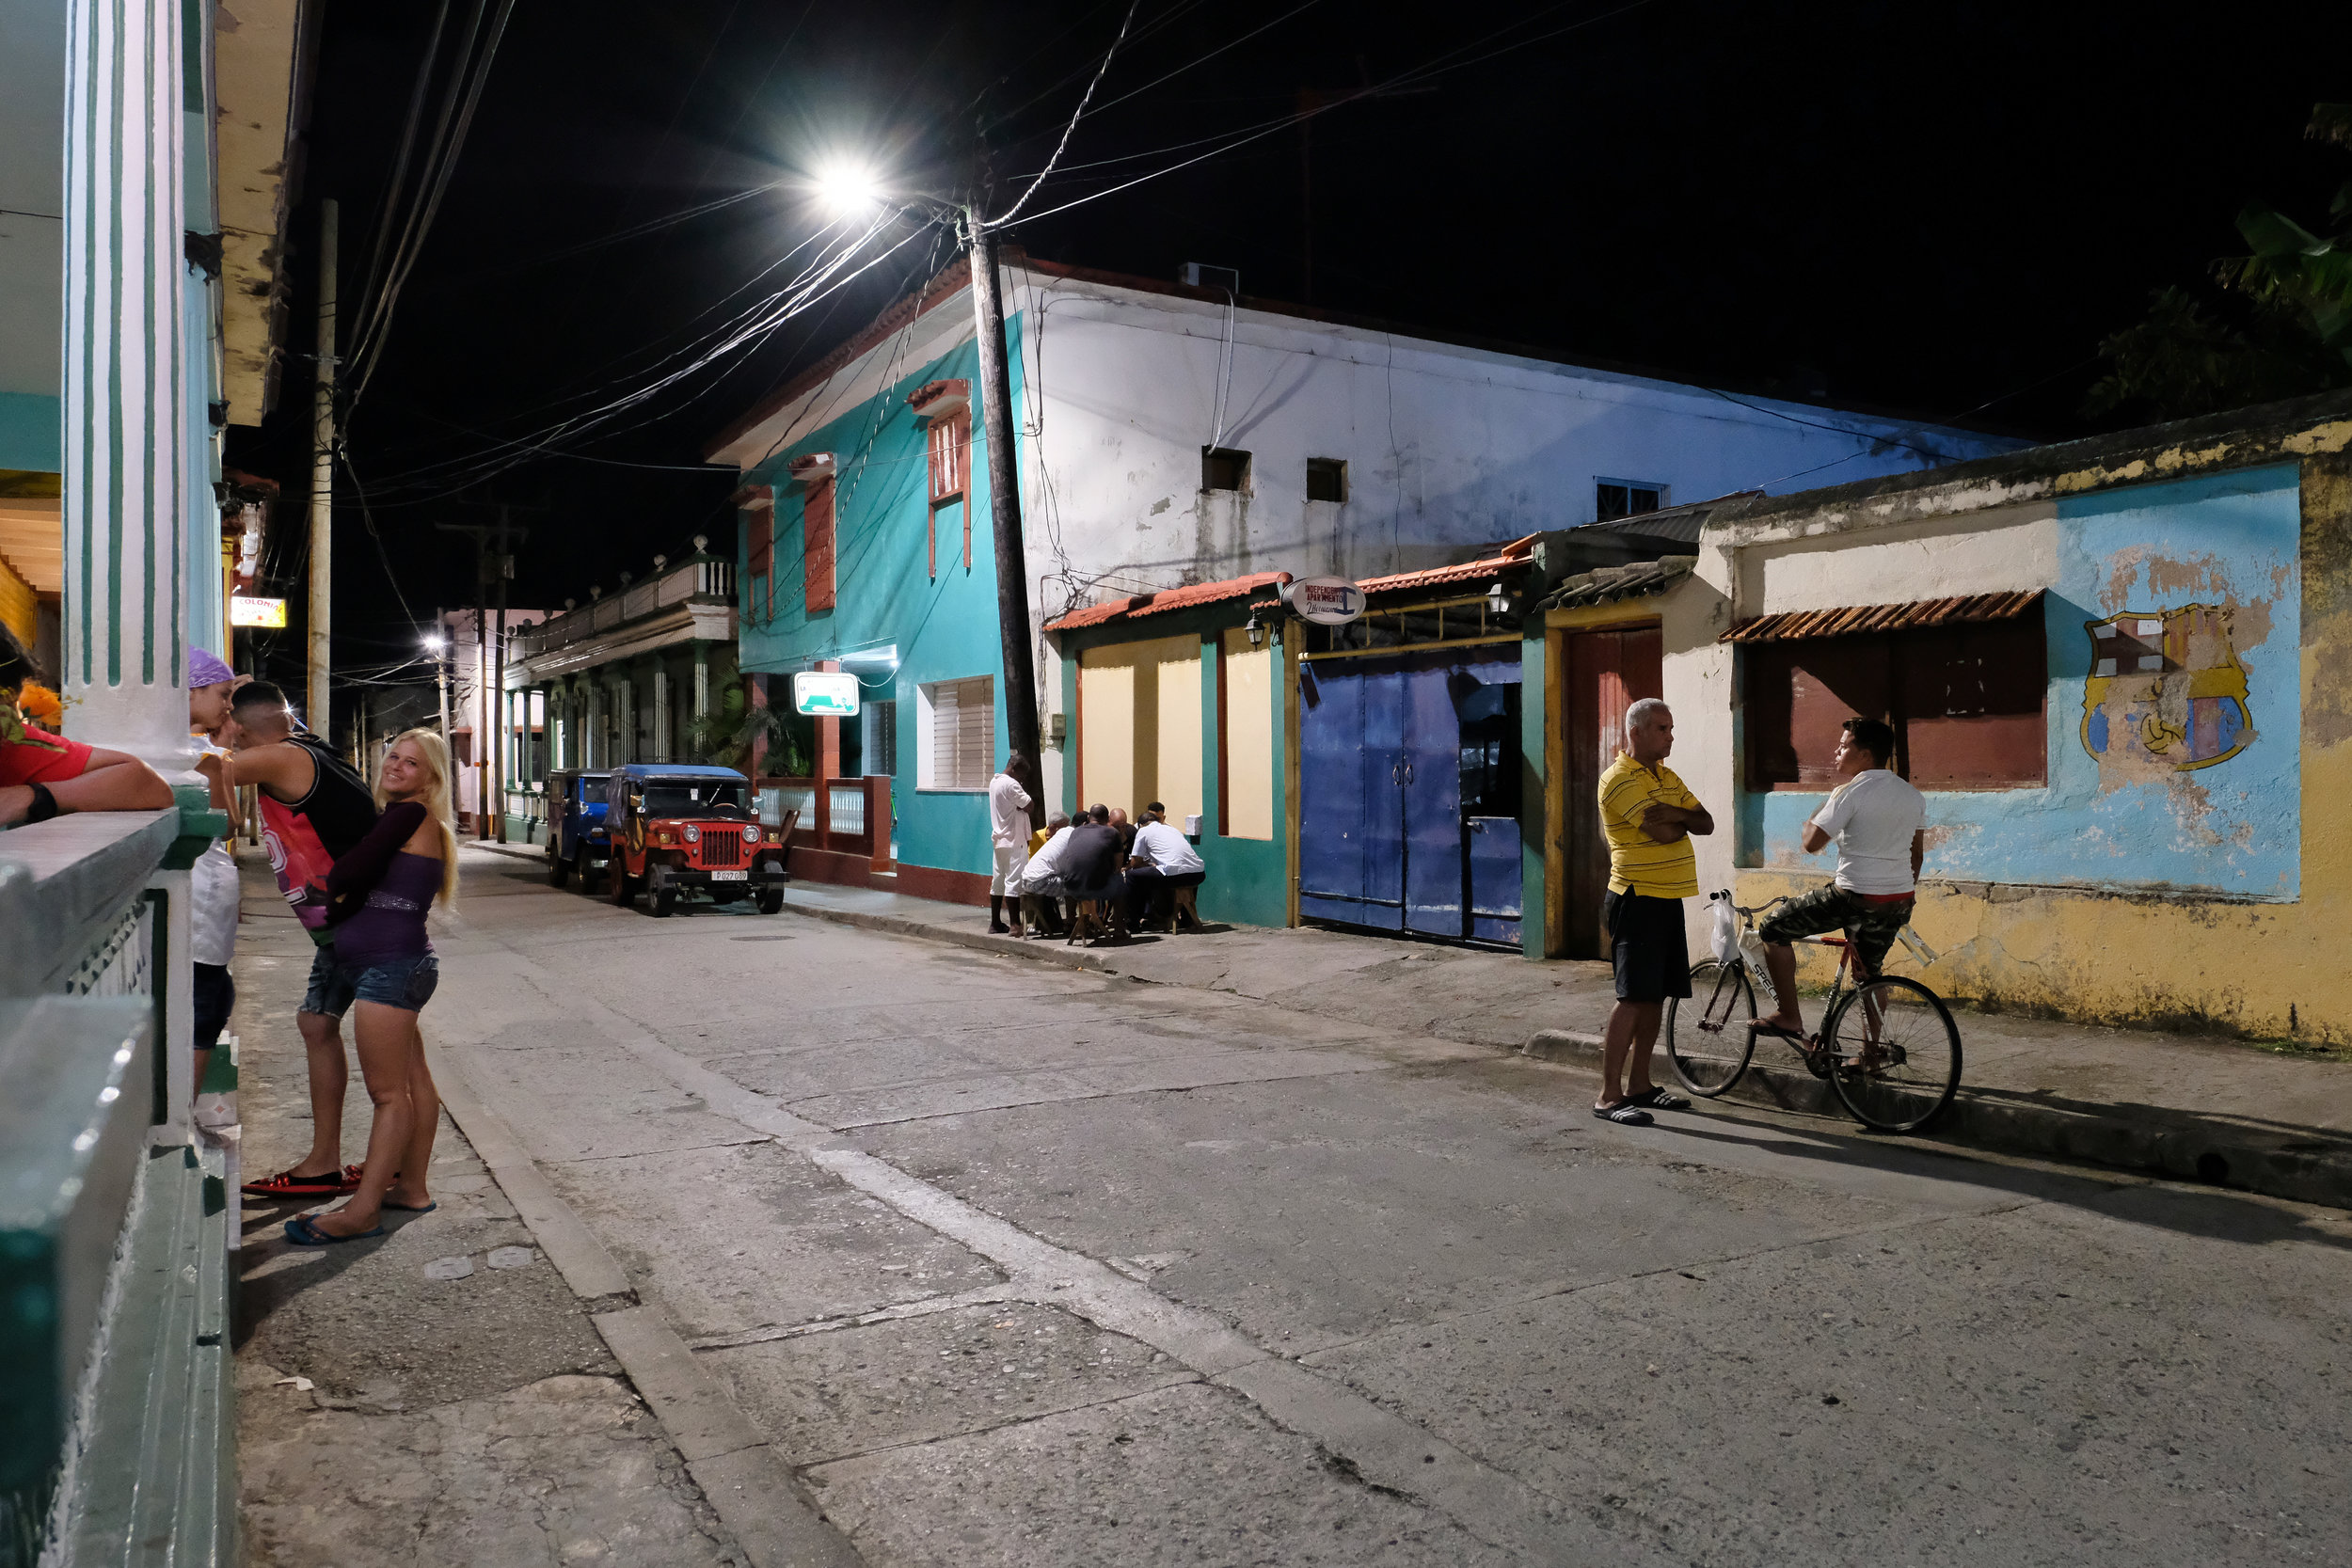 Baracoa Night Life away from the tourist area. Men huddled under street lamps playing Dominos or Chess (as these guys are) is a common sight.